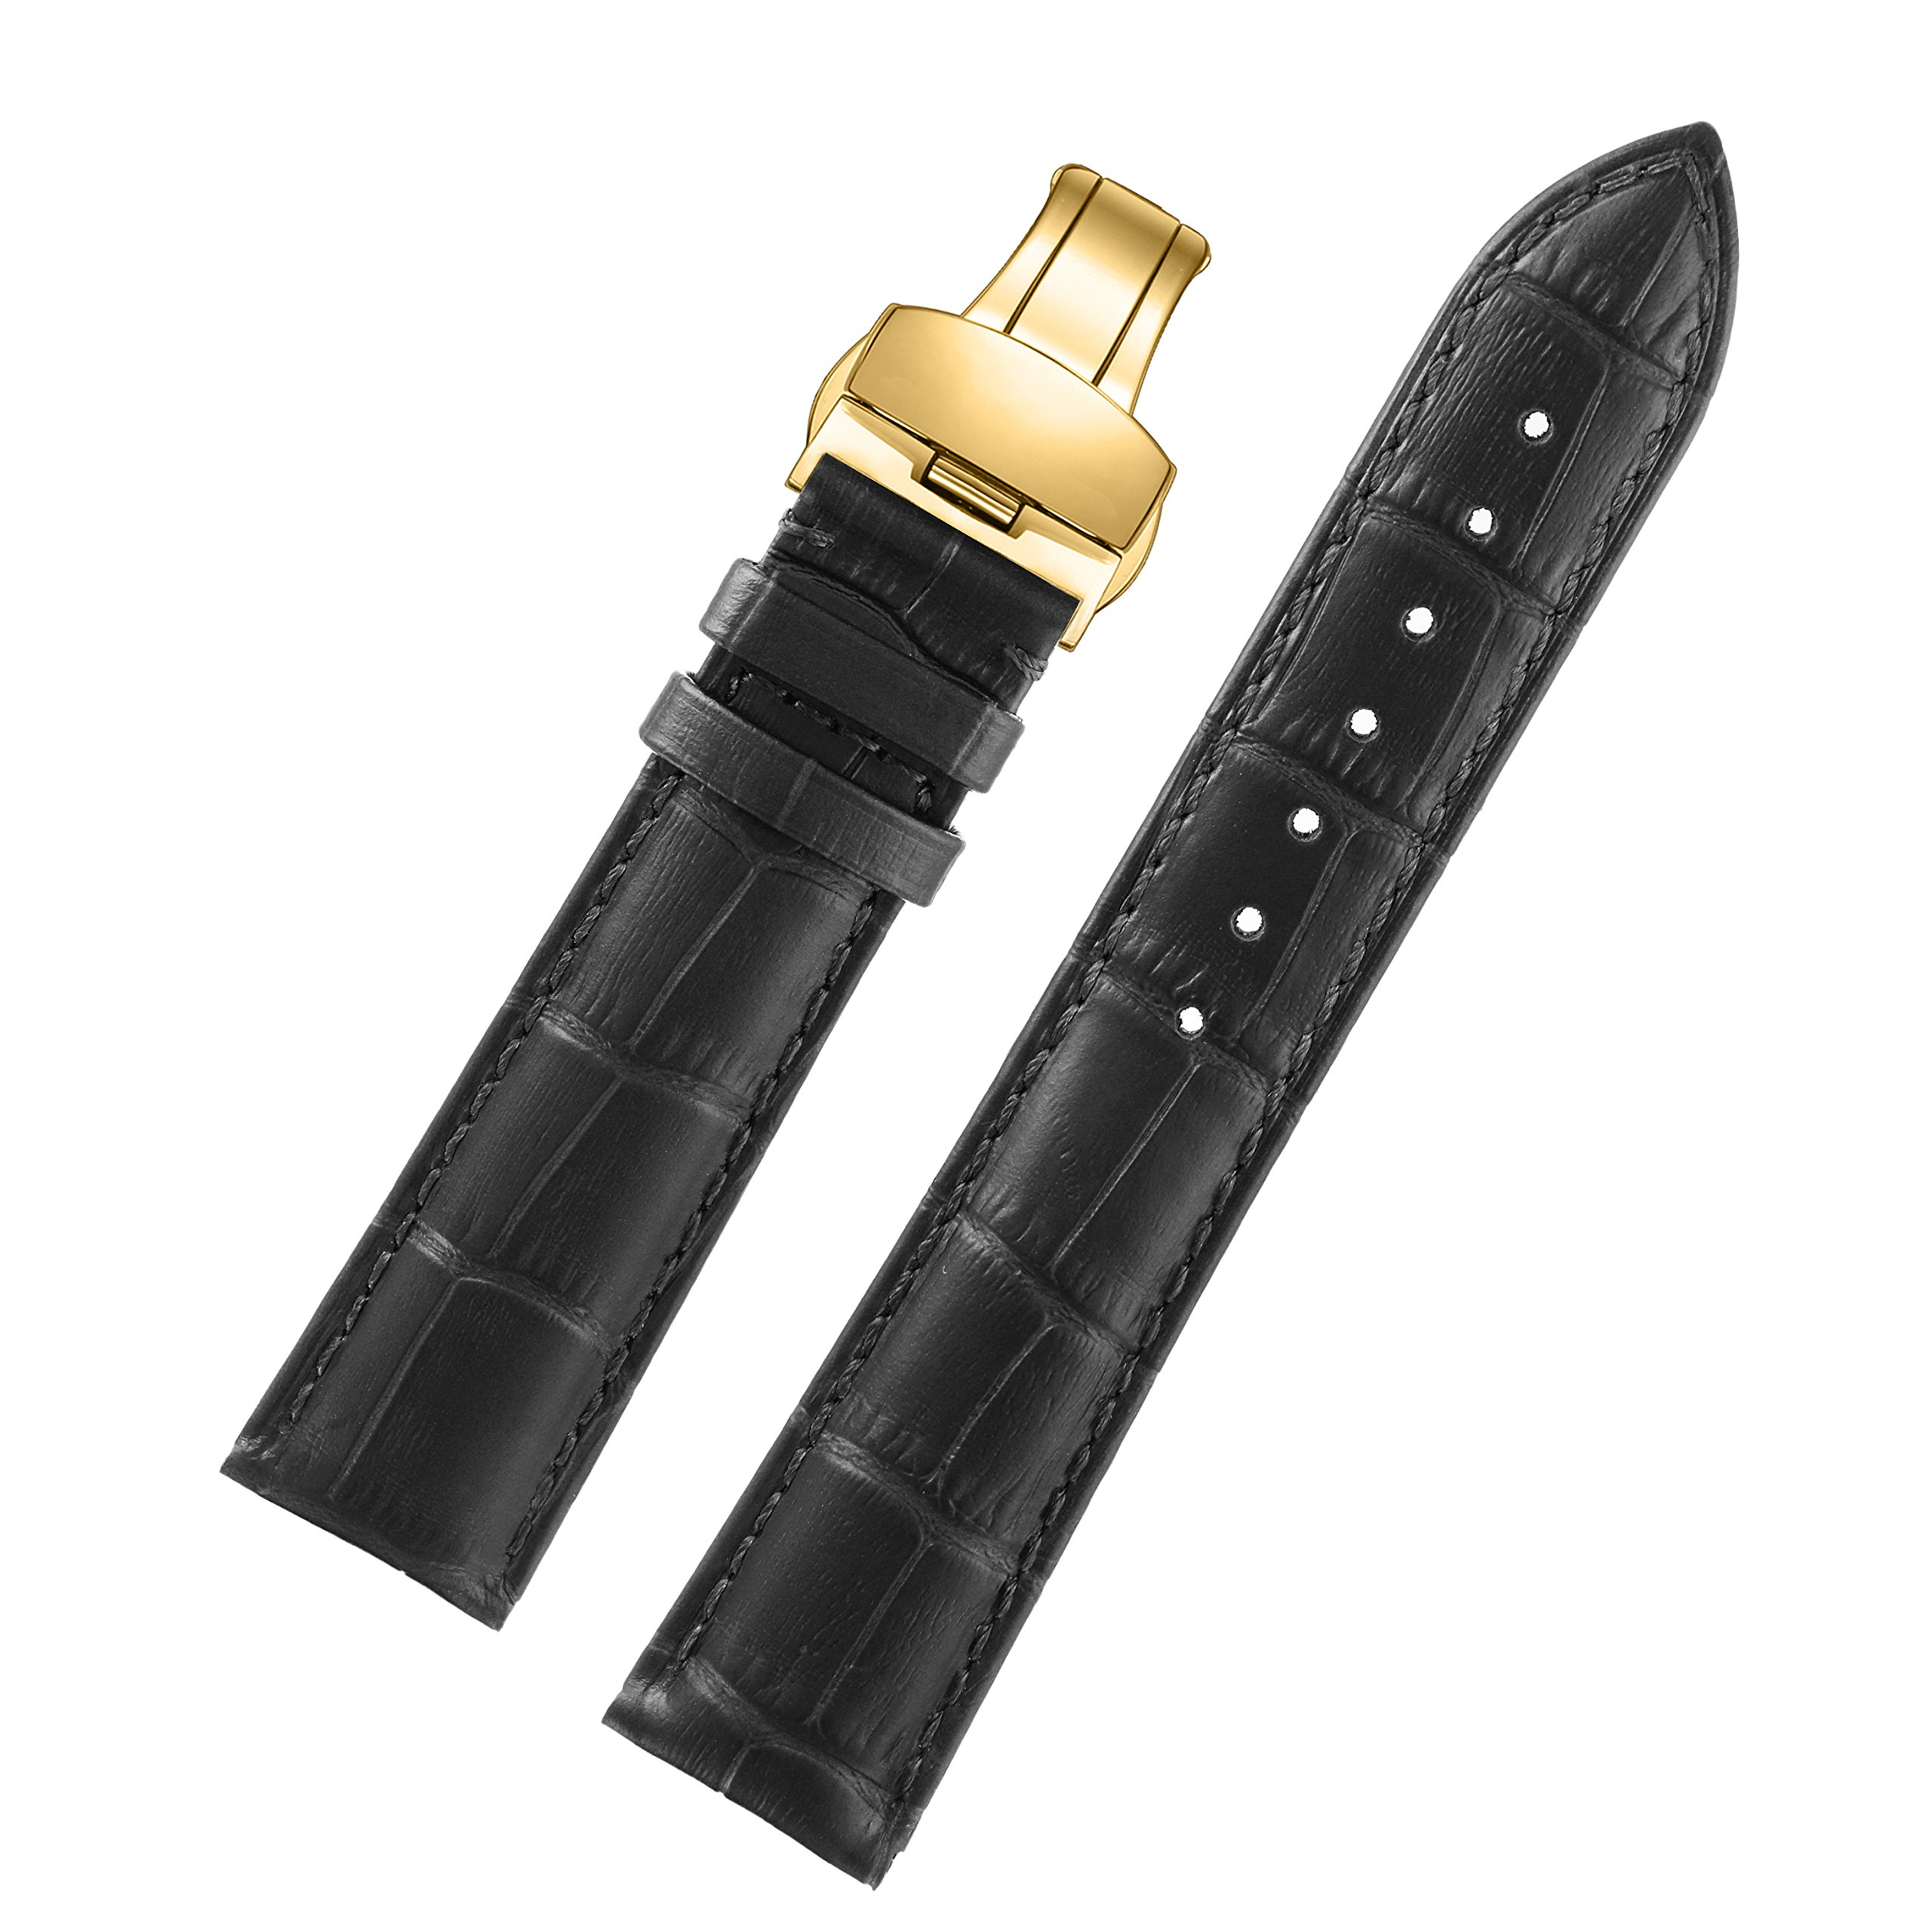 24mm Black Luxury Business Wide Men's Watches Leather Strap Watch Bands Gold Folding Clasp Natural Calfskin